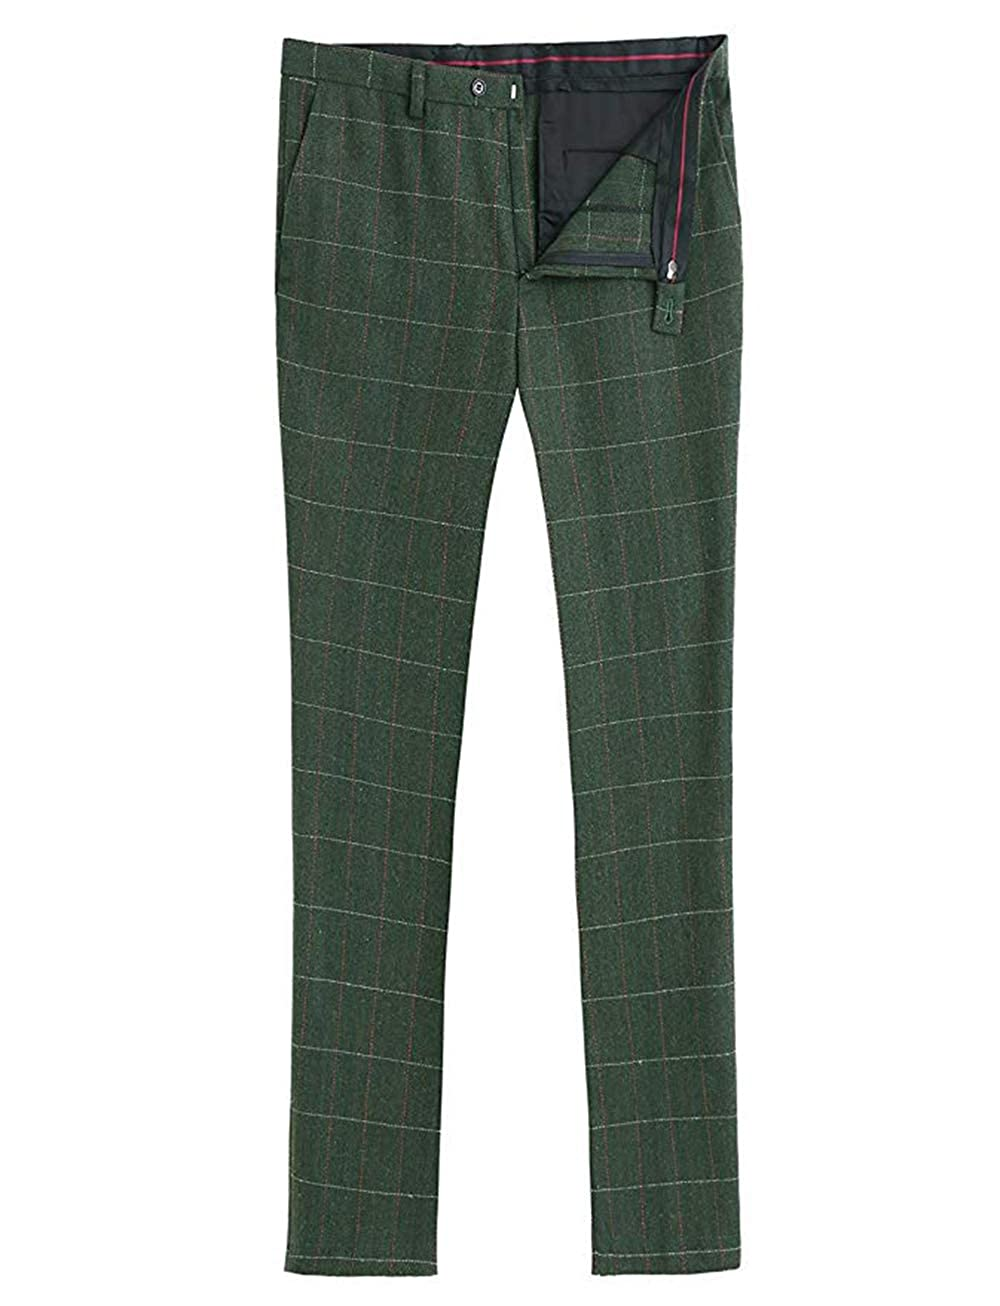 Mens Pants Tweed Wool Blend Classic Trousers Plaid Dress Pants with Hidden Expandable Waist